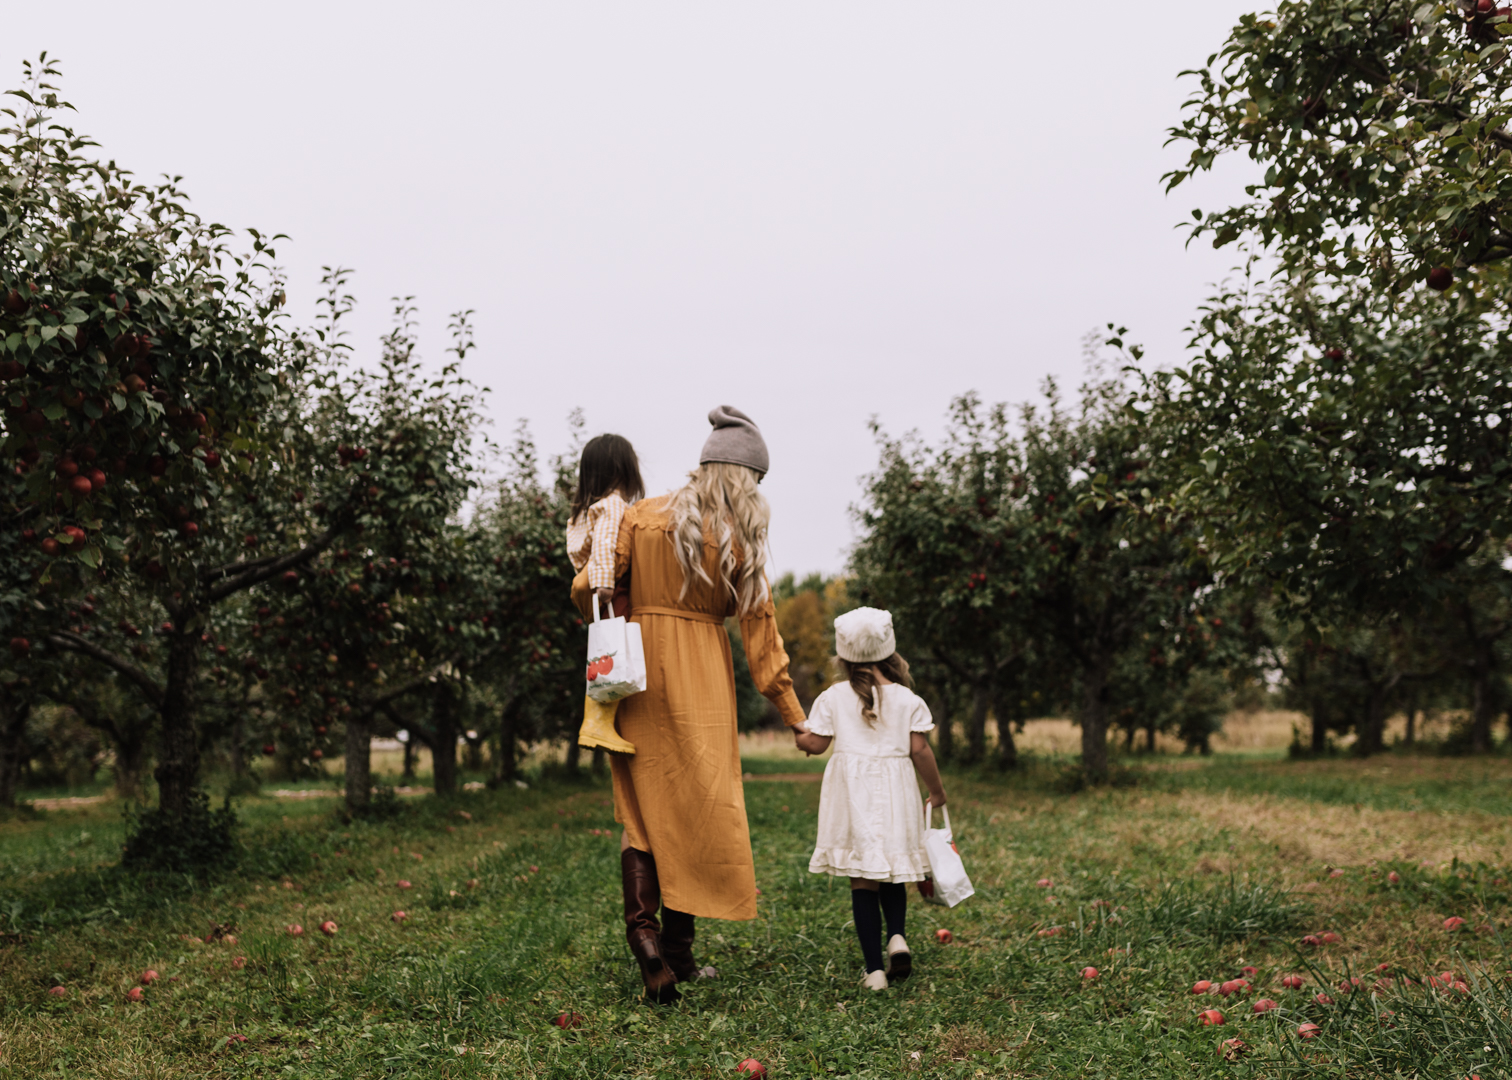 apple picking in south dakota | thelovedesignedlife.com #fallfun #applepicking #funwithkids #seasonsofsodak